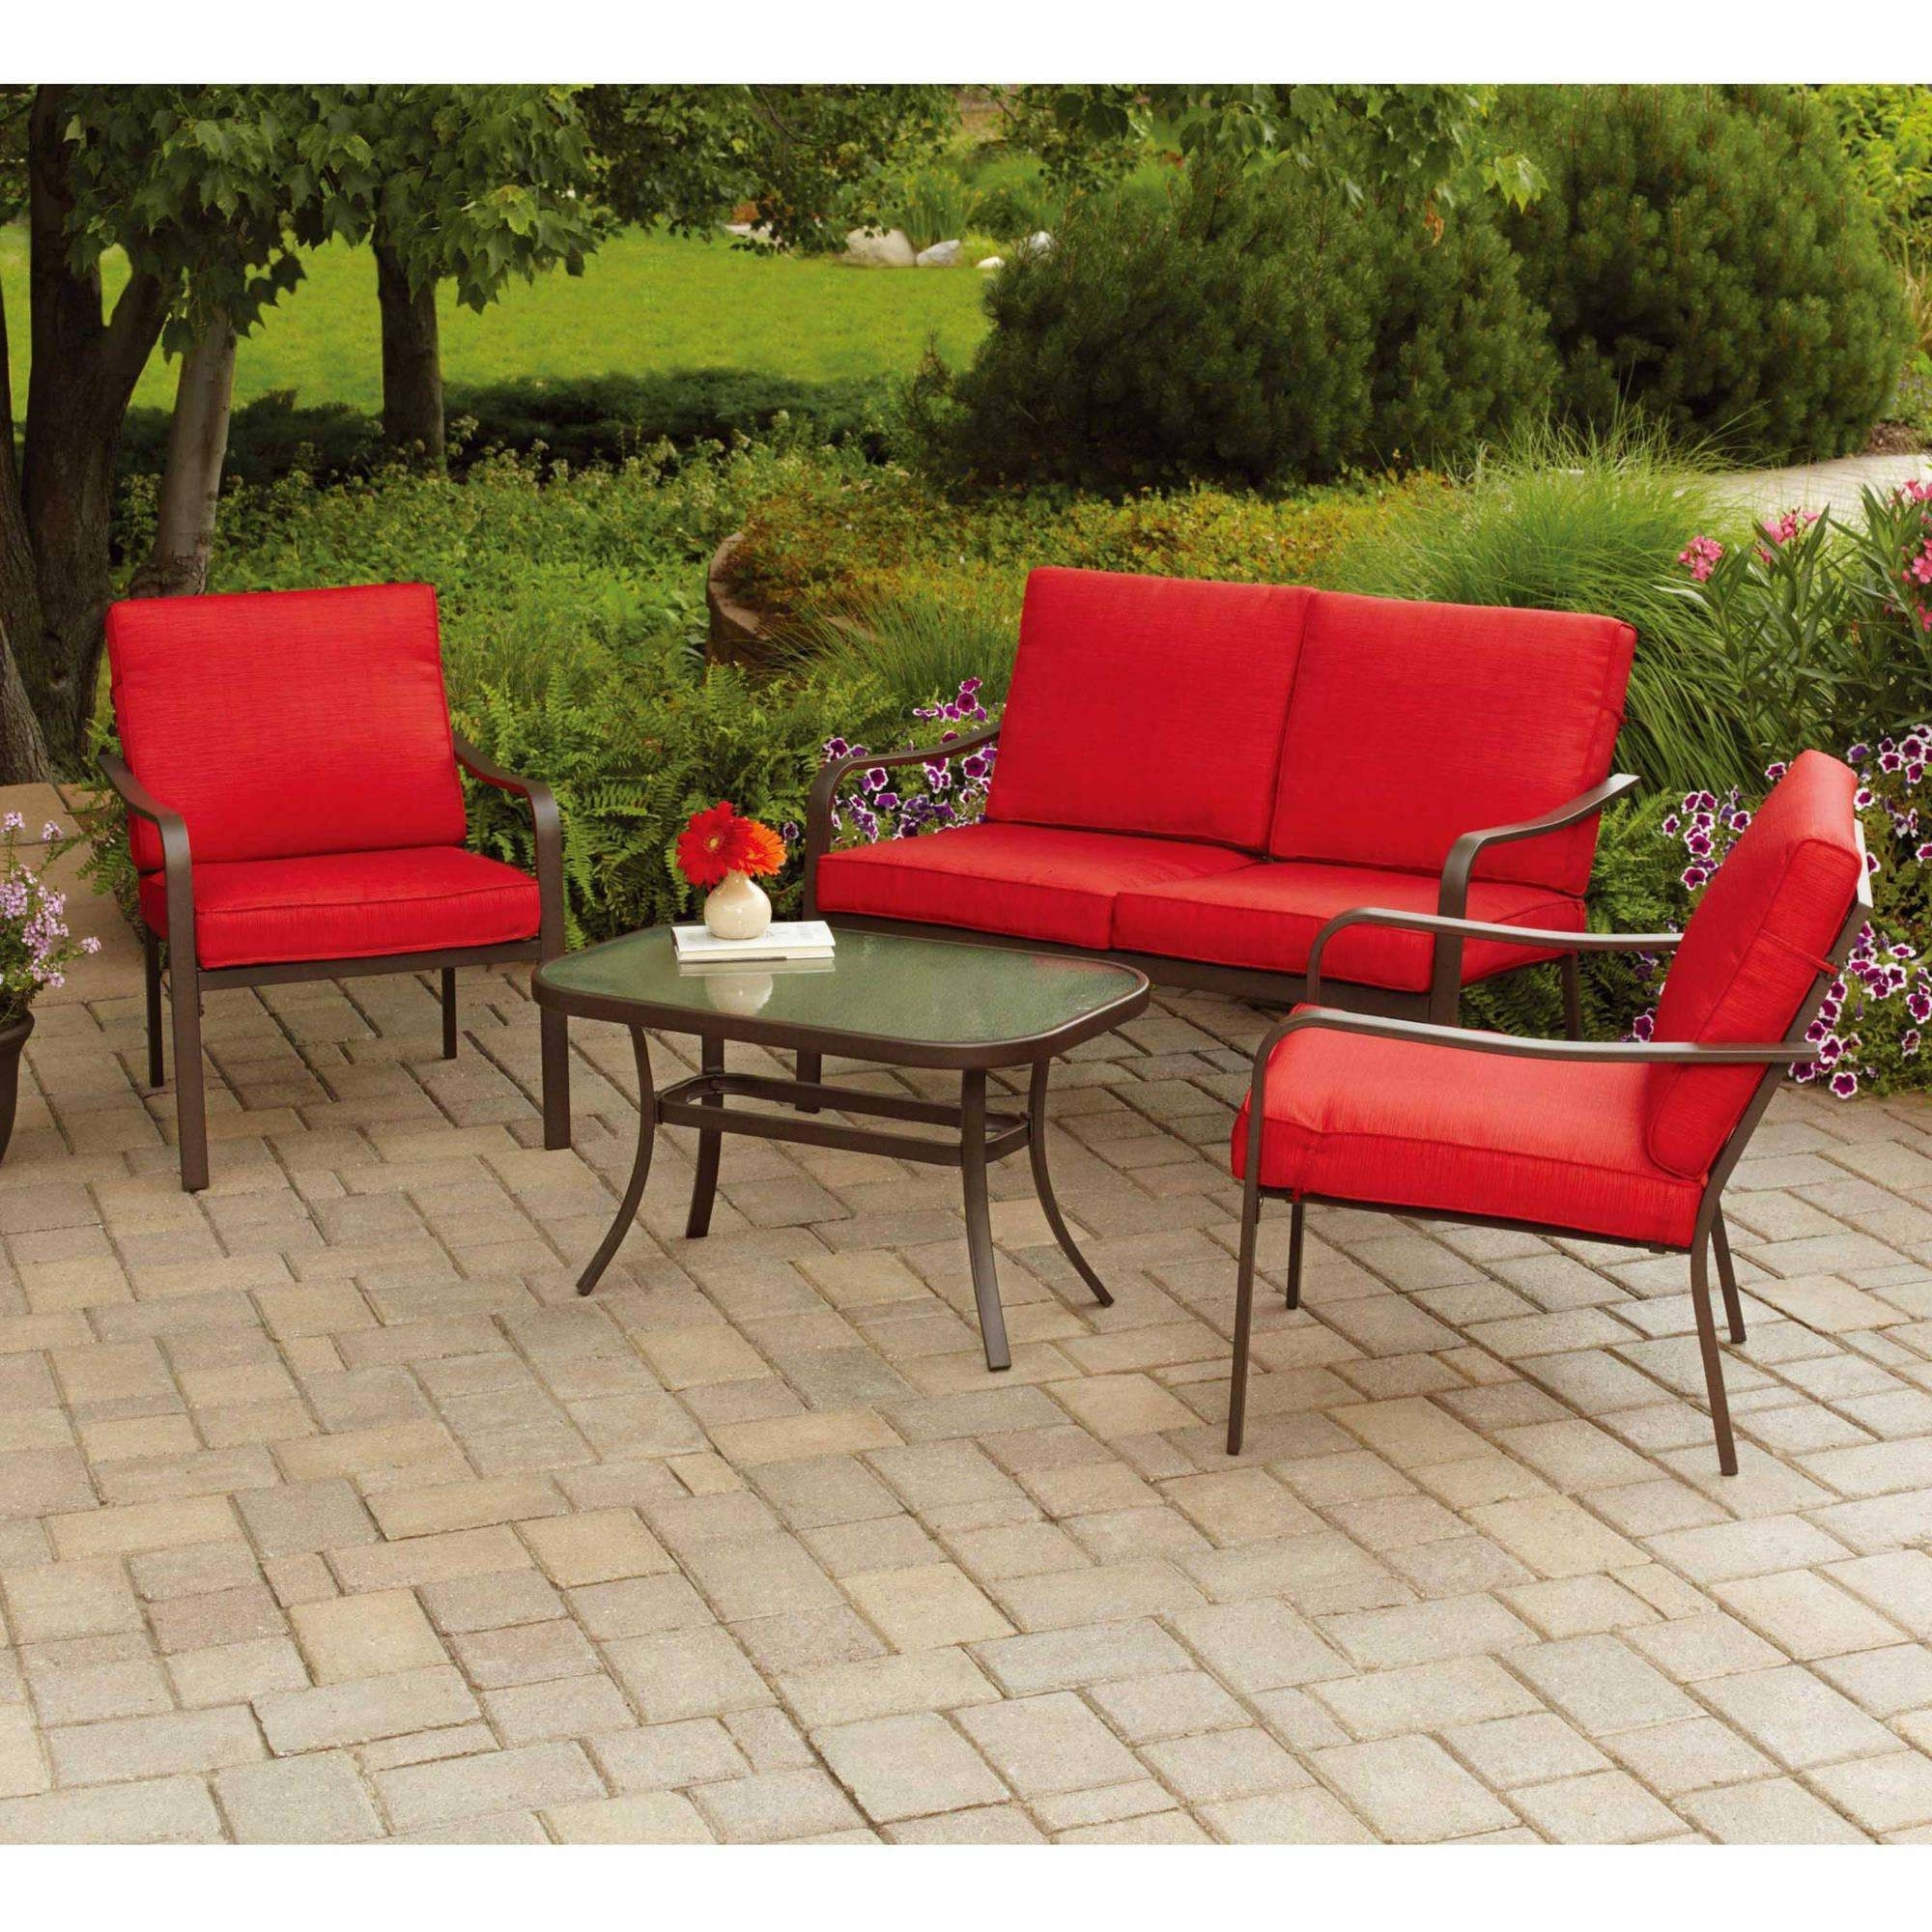 Most Recently Released Conversation Sets Small Patio Furniture Sets Cheap Garden Concept Throughout Patio Conversation Sets With Dining Table (View 10 of 15)